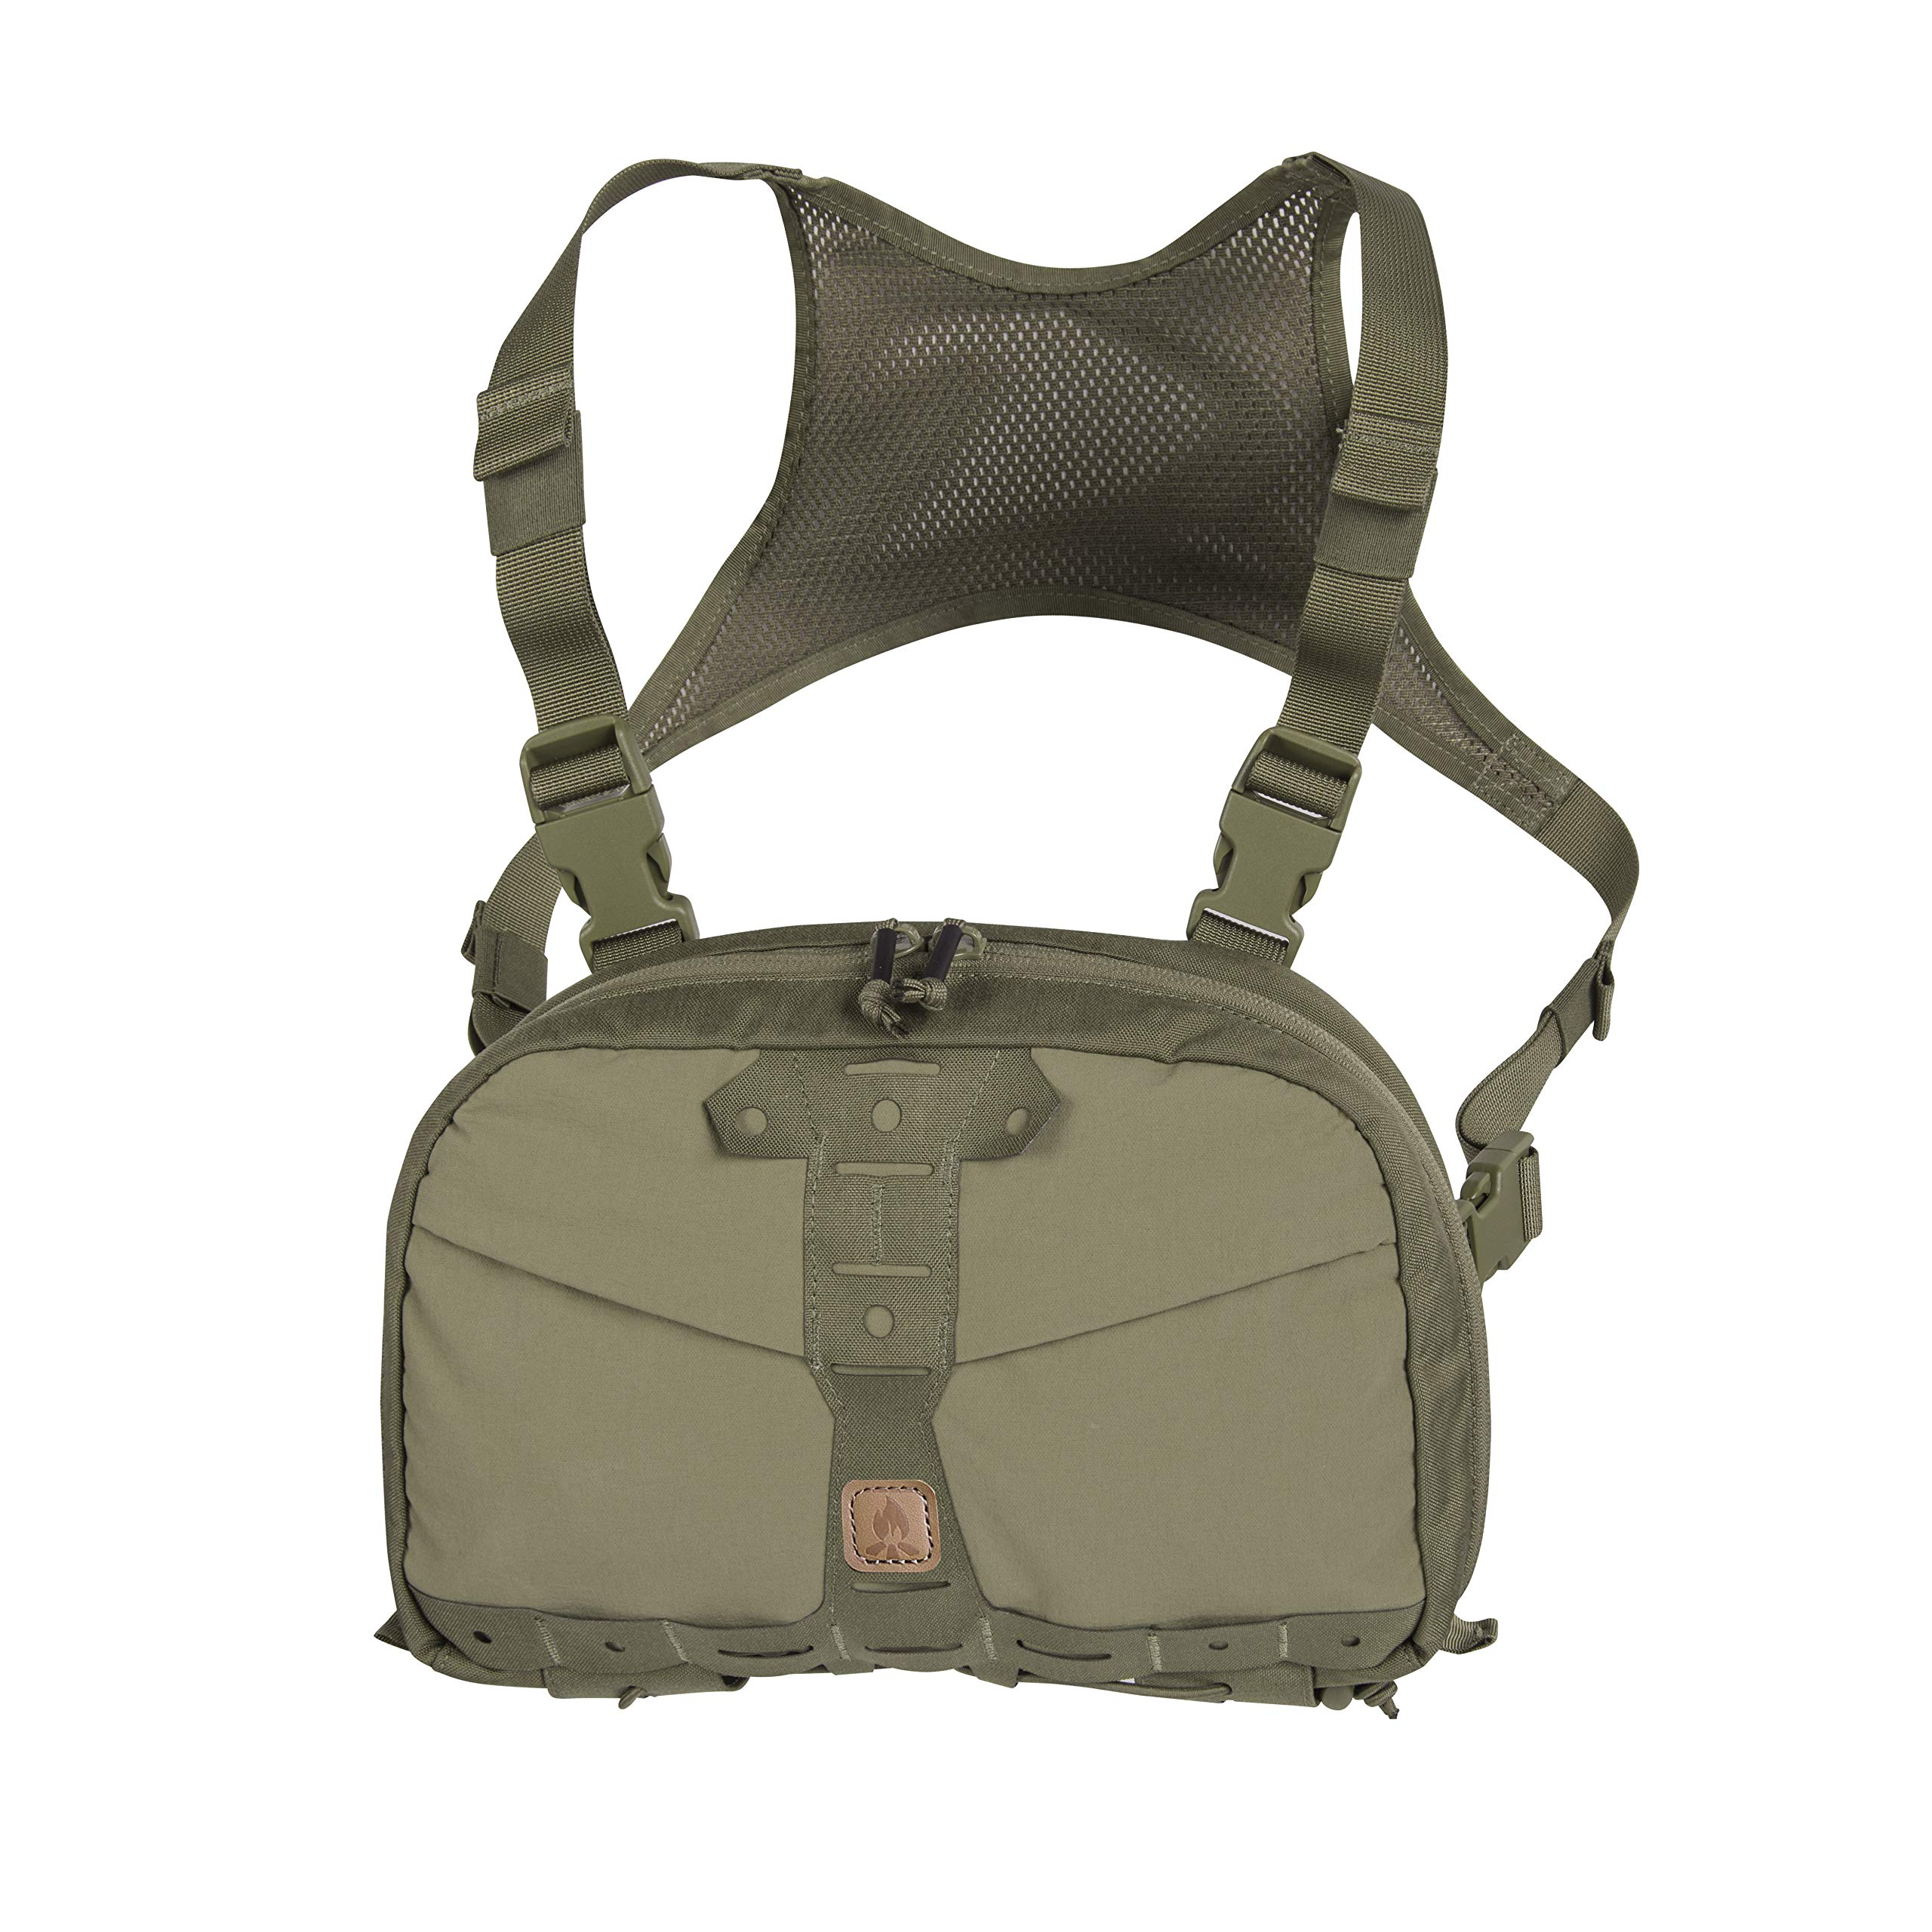 Helikon-Tex Bushcraft Line, Chest Pack Numbat Adaptive Green by Helikon-Tex